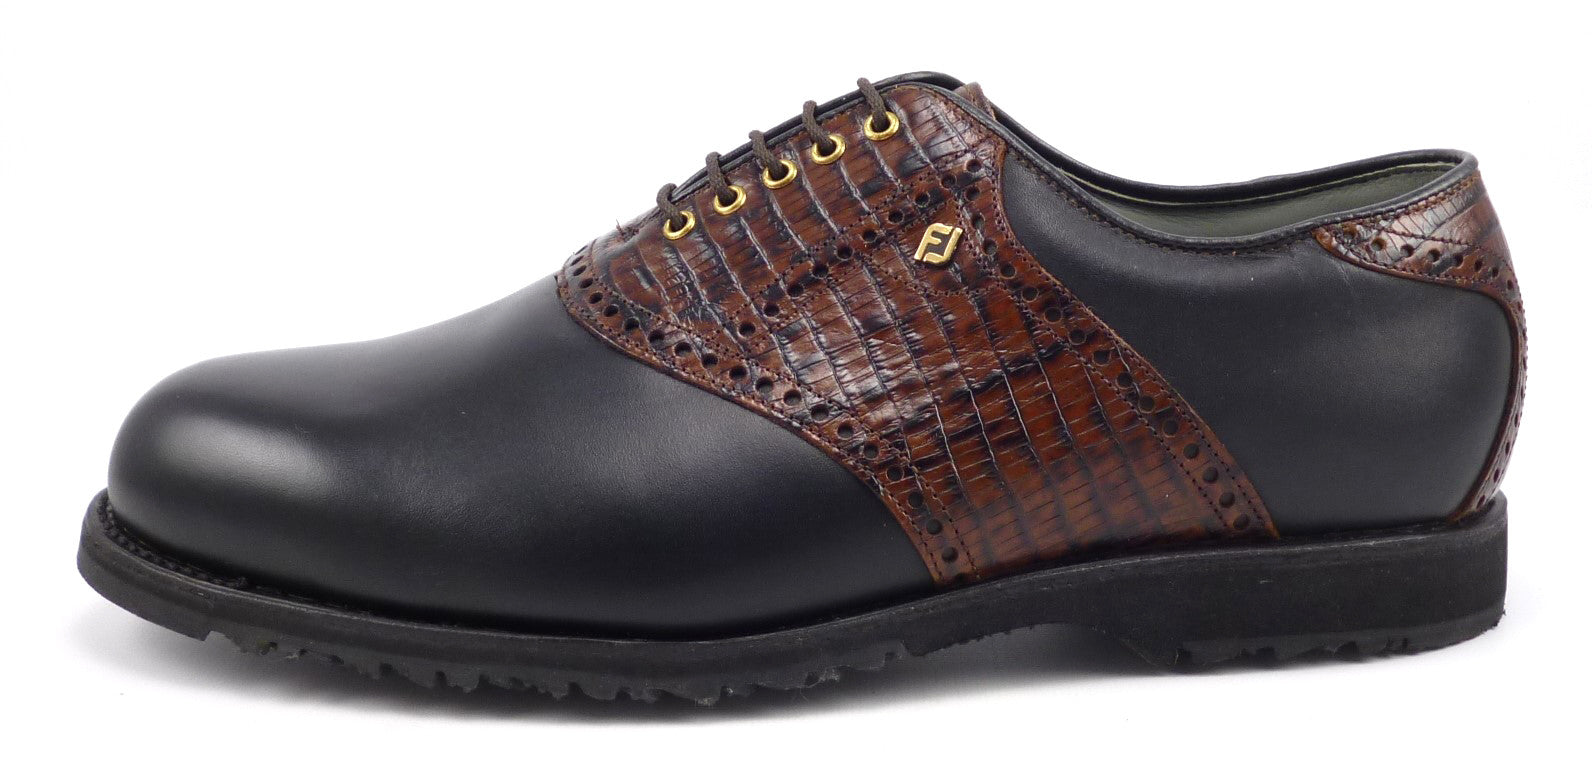 Footjoy Classic Dry New Mens Golf Shoe 10 Eee Spikeless Distinctive Deals Designer Bags Shoes Accessories